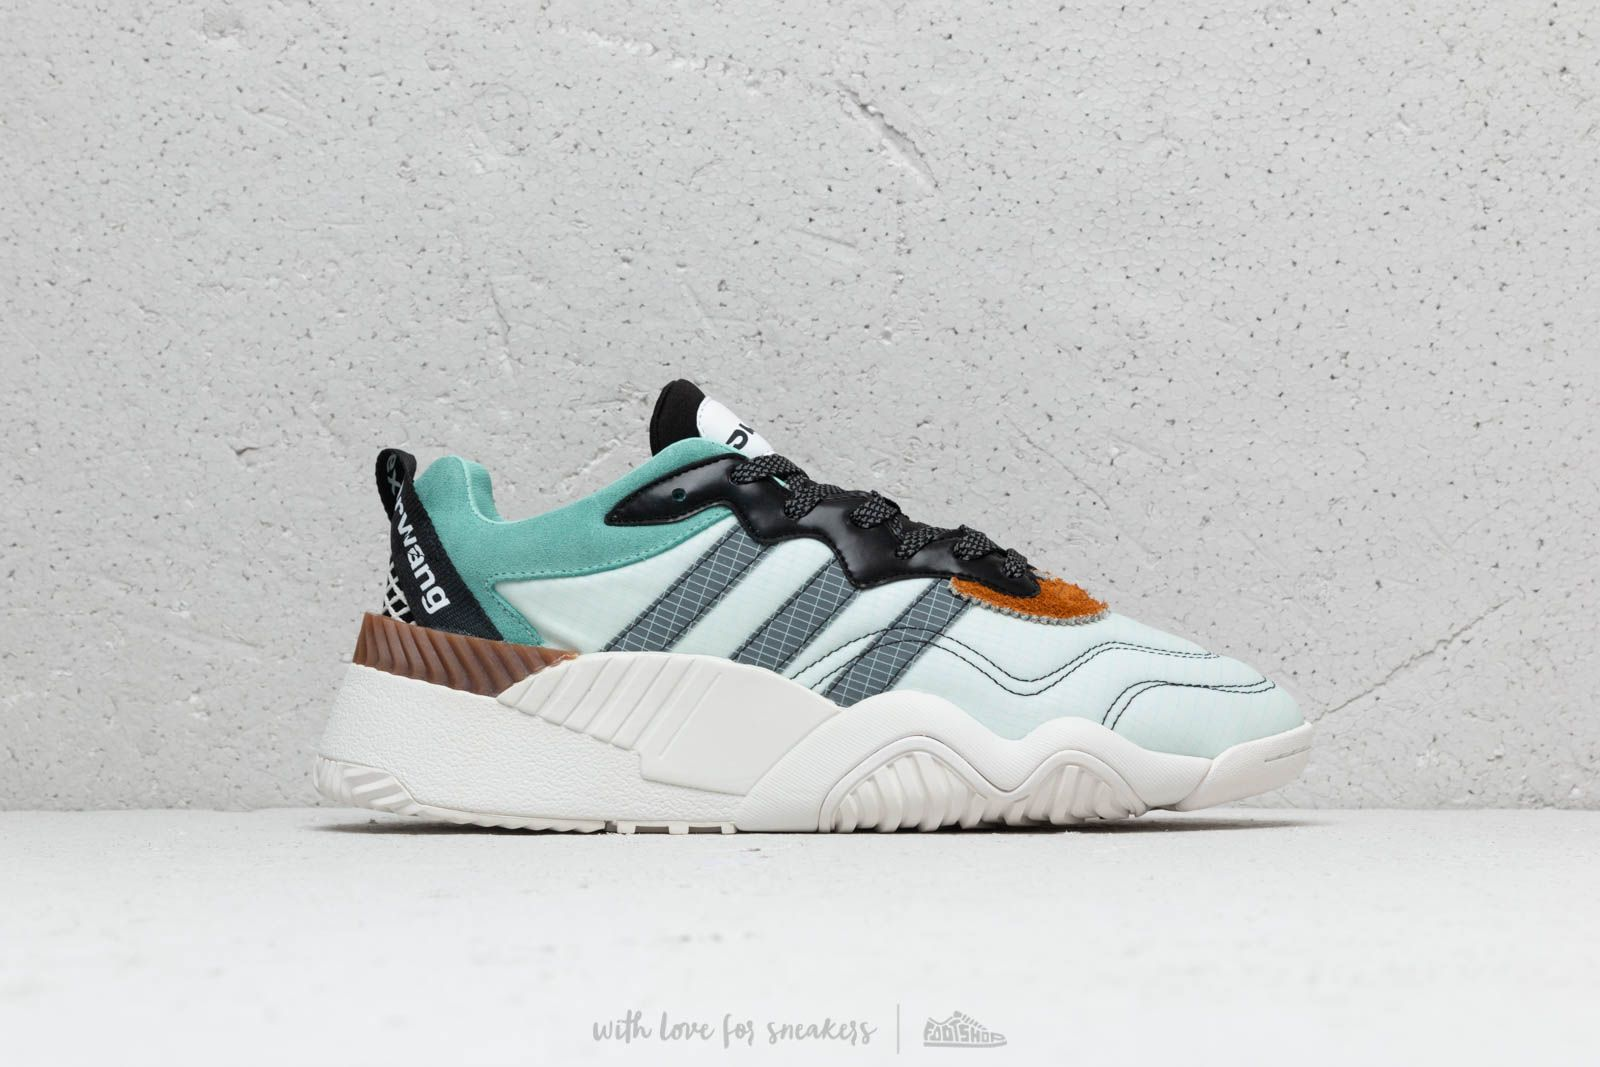 adidas x Alexander Wang Turnout Trainer Clear Mint  Core Black  Clear Mint  at a 804f316c6